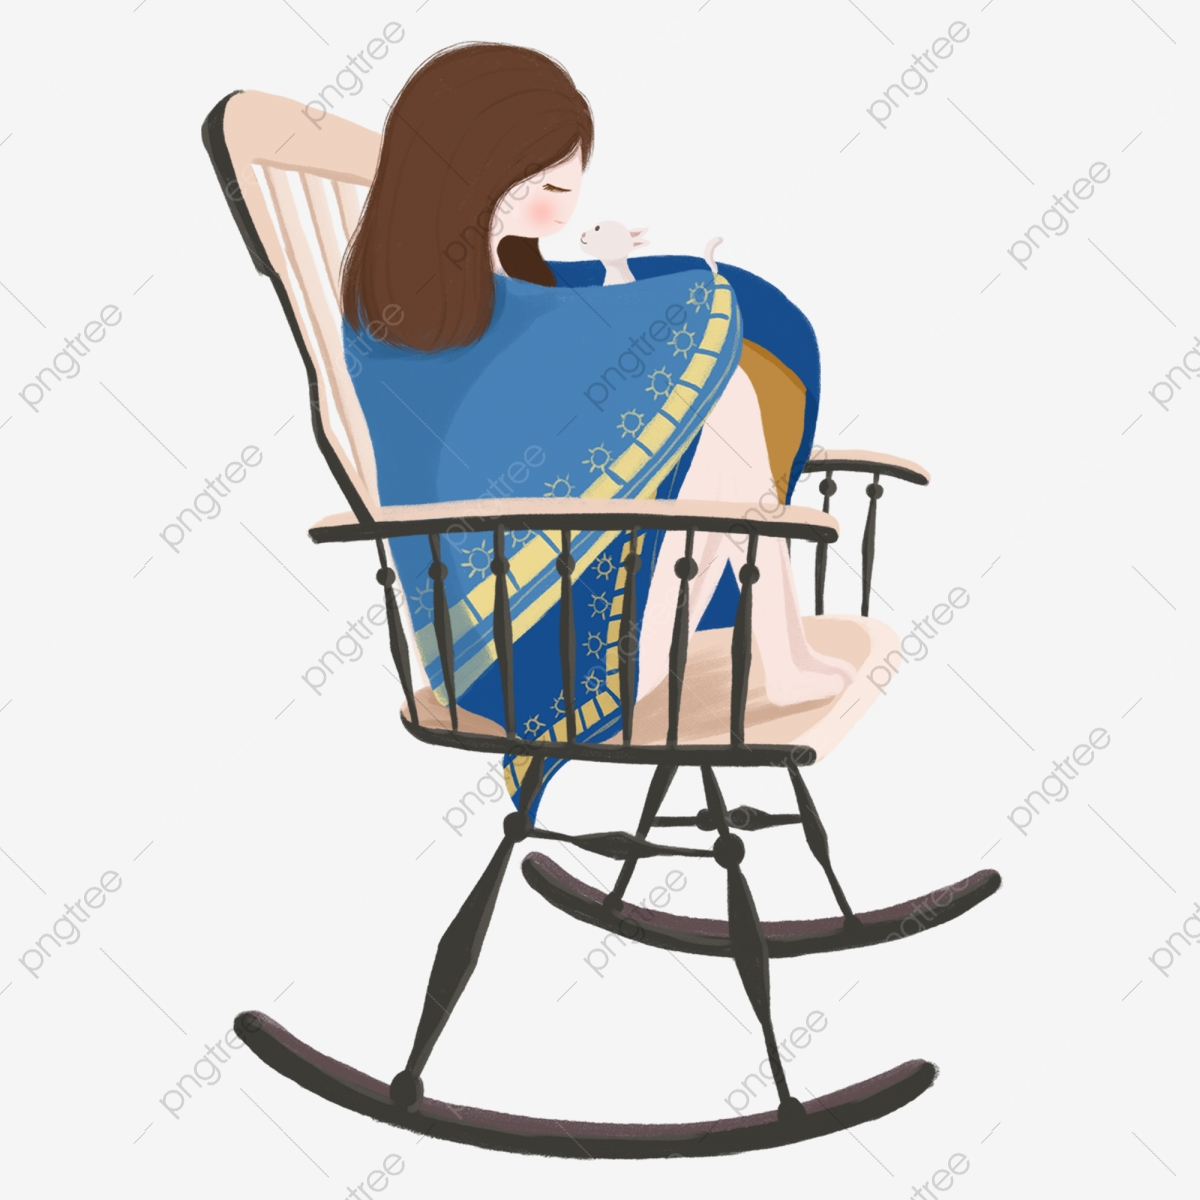 Remarkable Hand Drawn Cartoon Curled Up In Blue Dress Beauty Sitting Machost Co Dining Chair Design Ideas Machostcouk